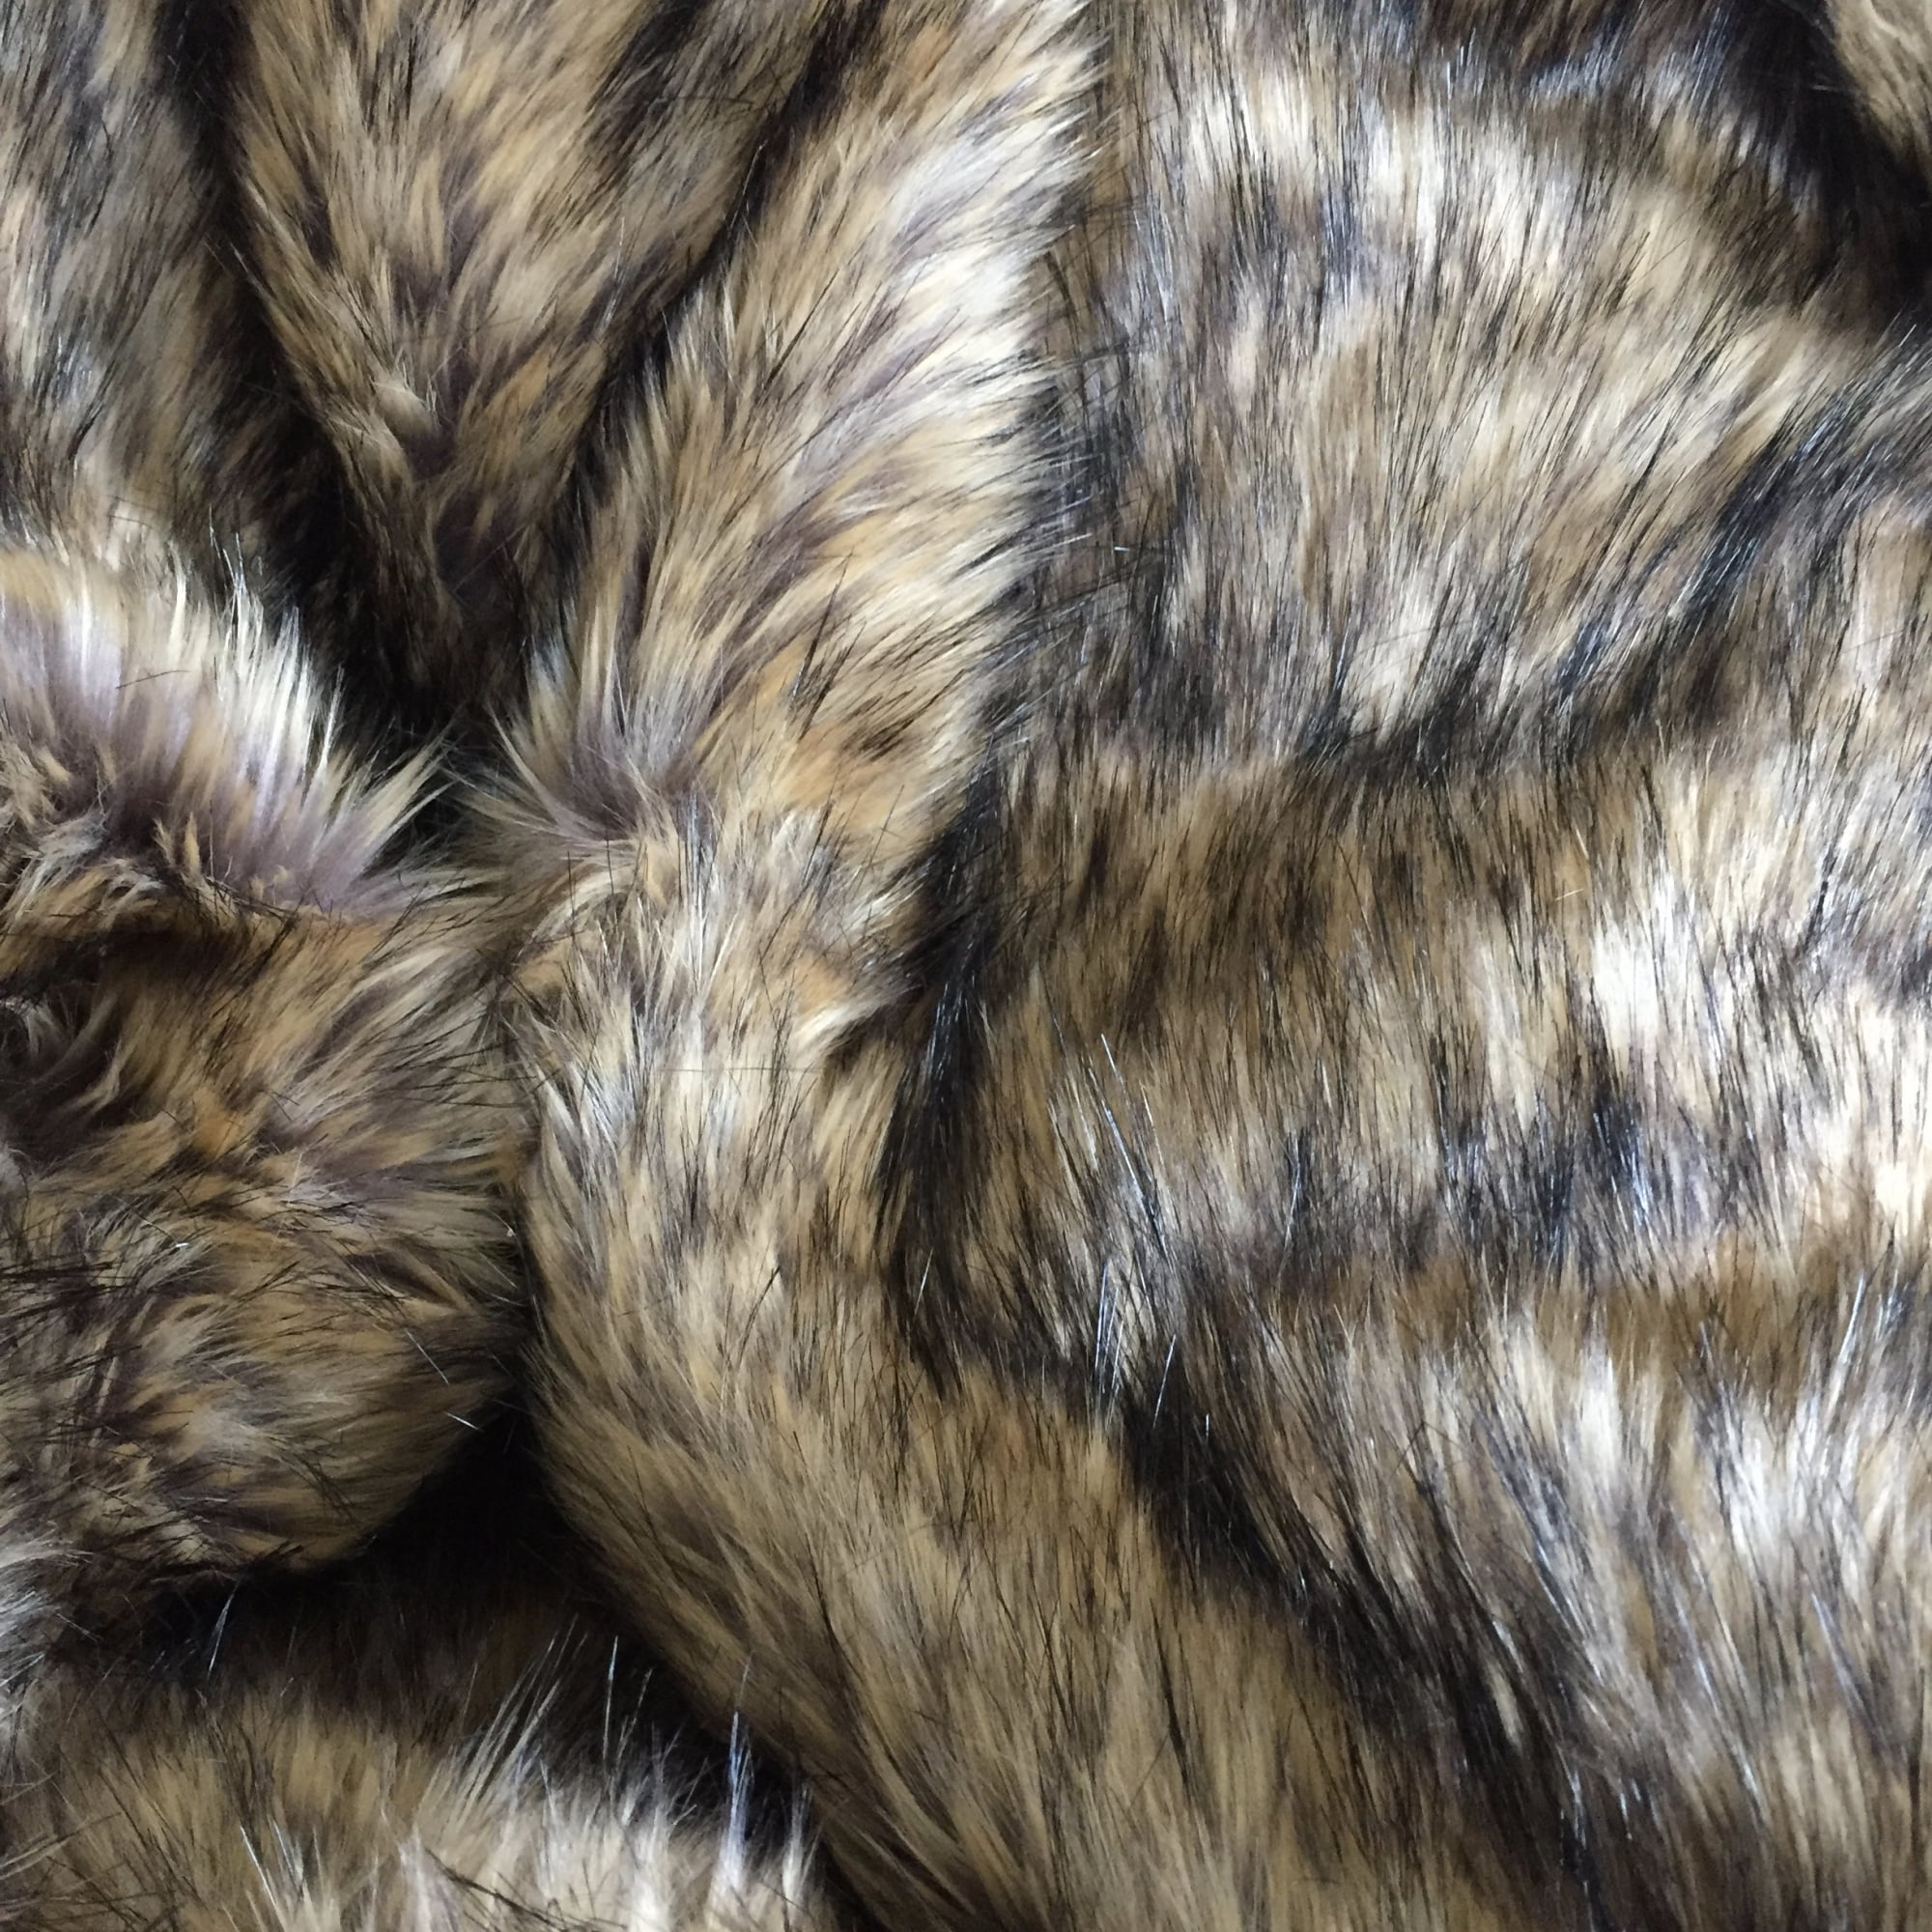 Faux fur throw blanket Mongolian Lamb Lx Interiors Alpine Wolf Faux Fur Throwblanket The Luxe Company Alpine Wolf Faux Fur Throwblanket Bed Bath Home Travel From